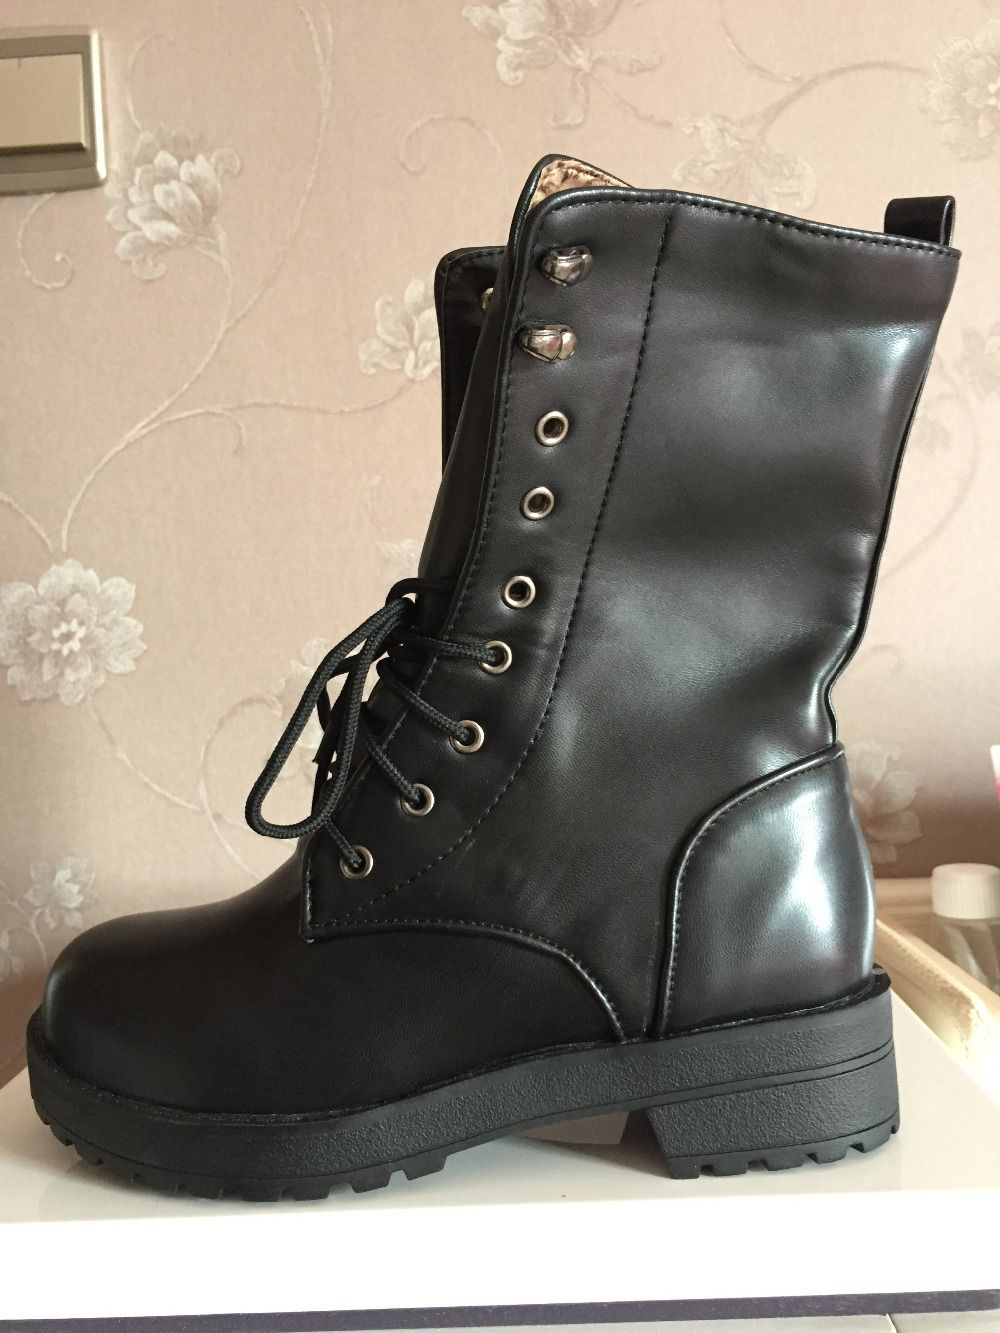 Aliexpress.com : Buy 2016 New Martin boots Ankle boots women shoes ...